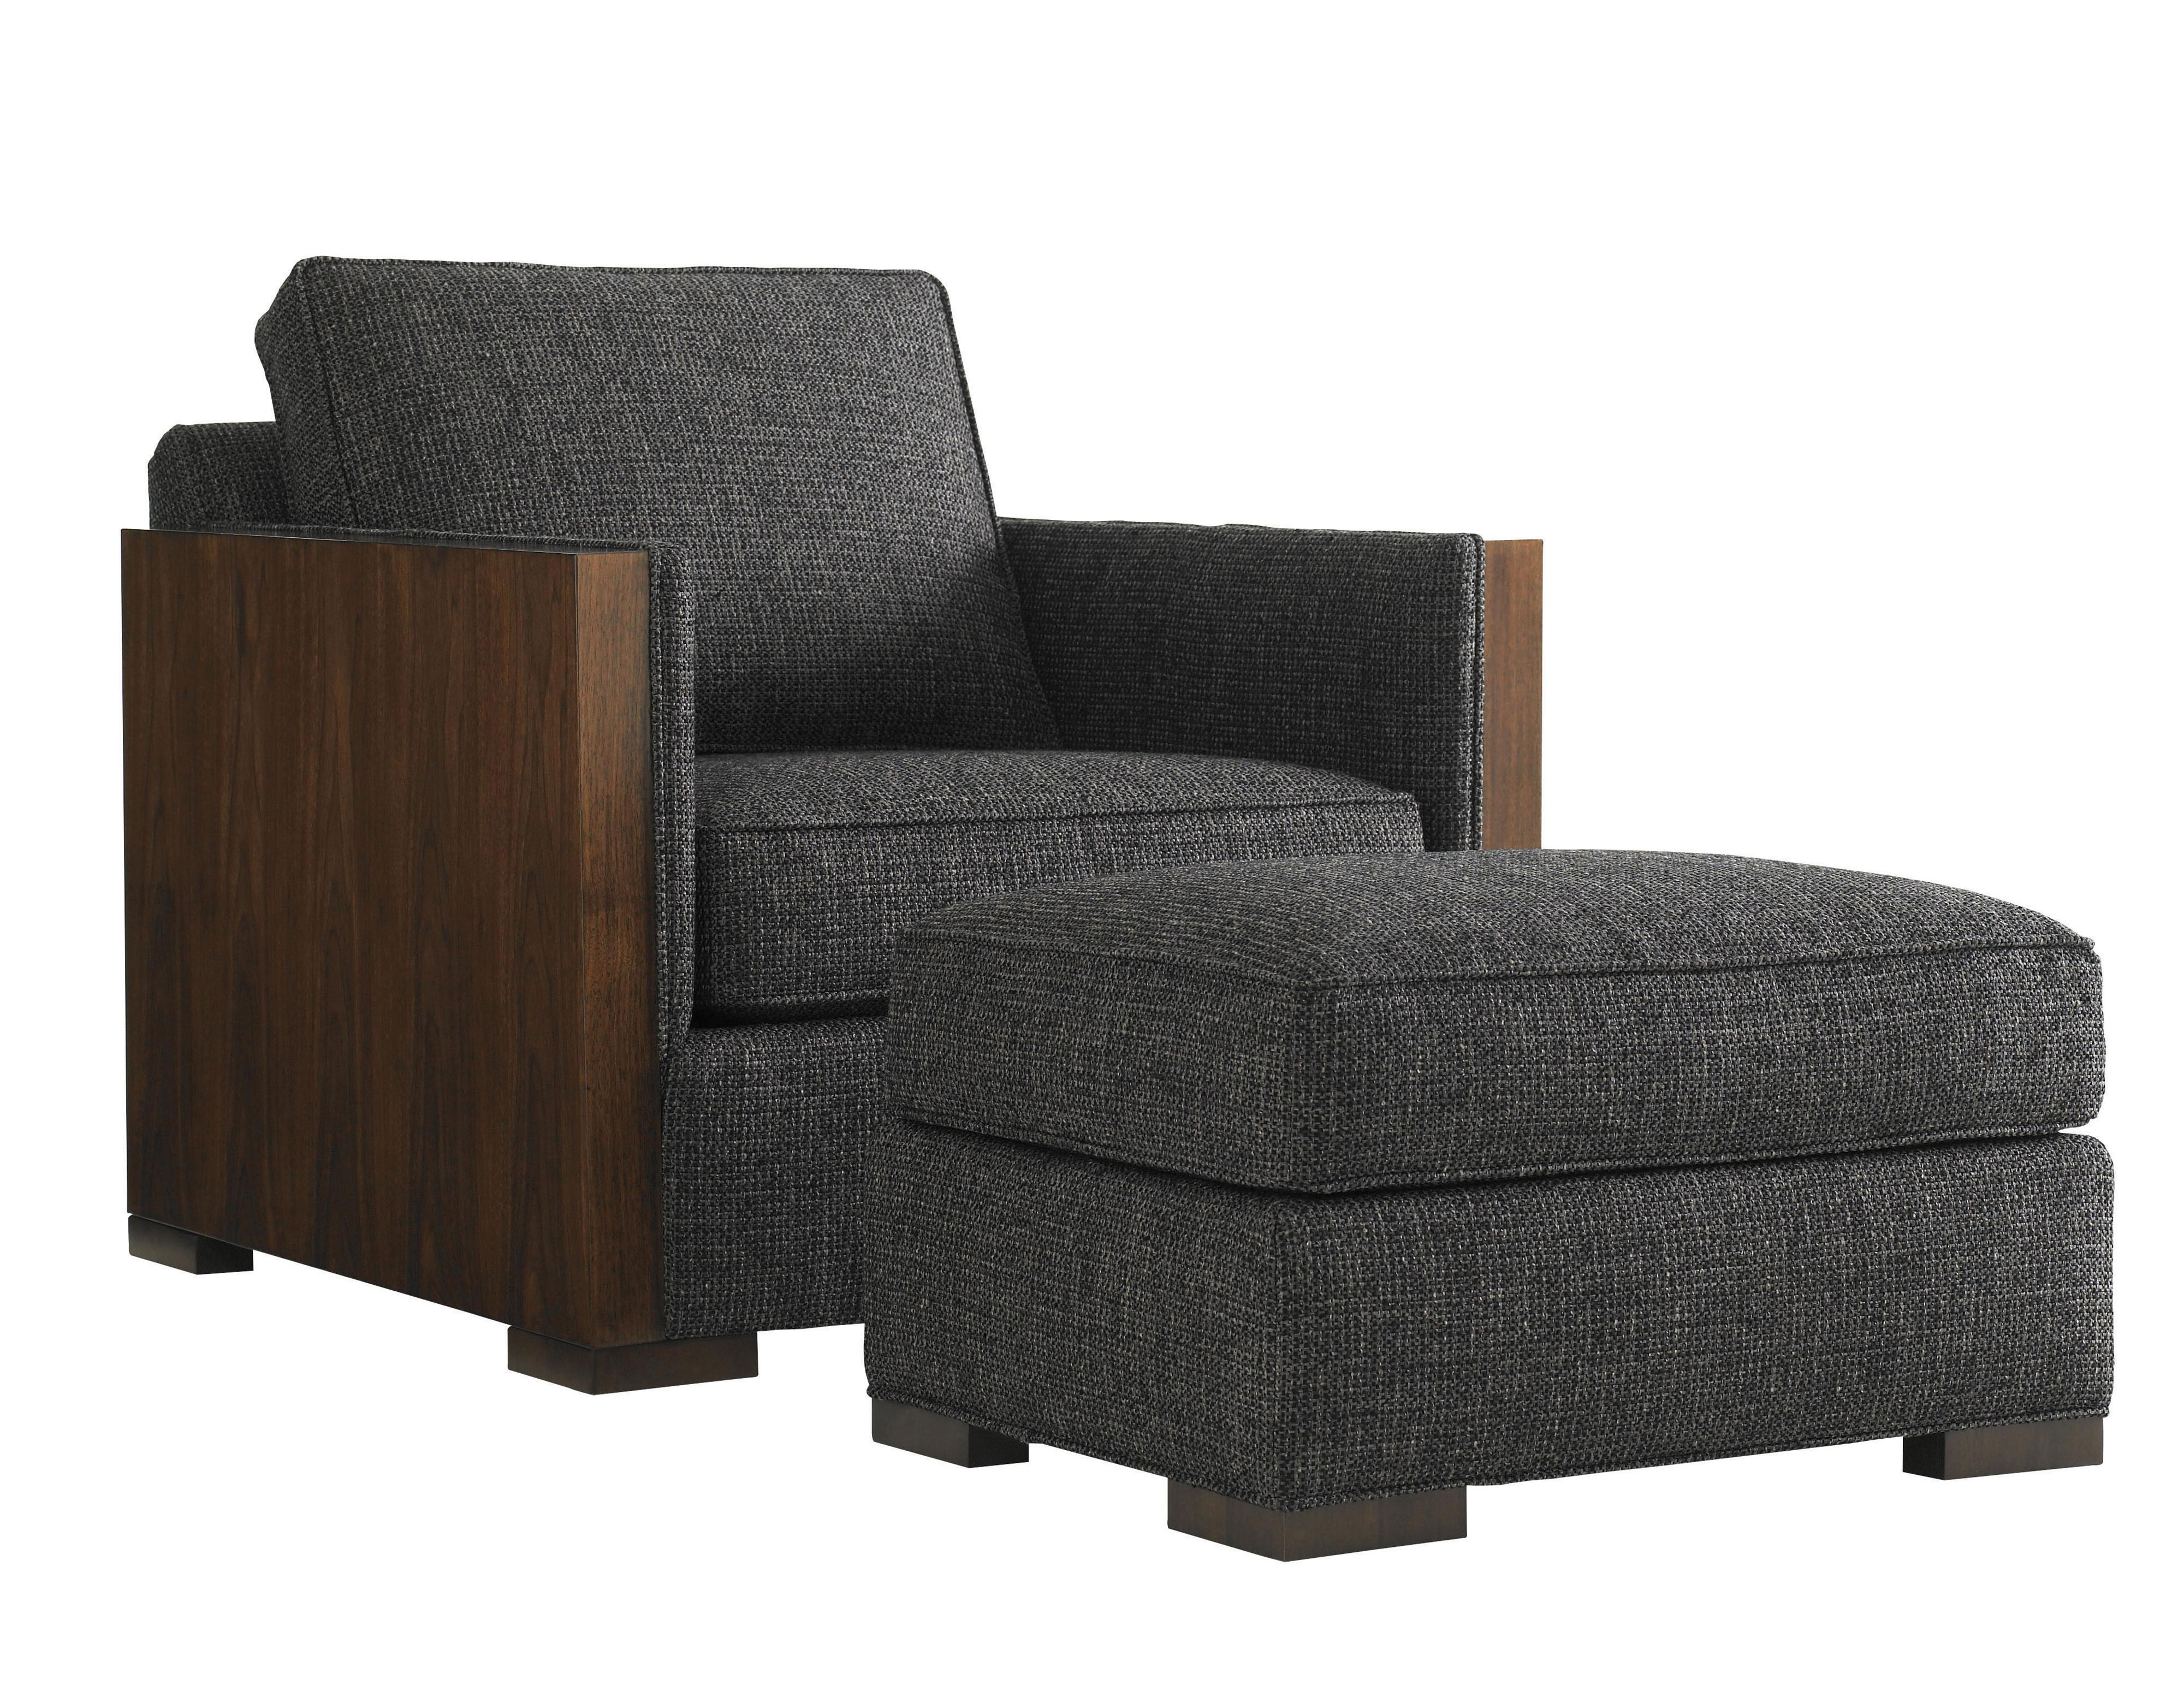 Lexington Tower Place Contemporary Edgemere Chair And Ottoman Reeds Furniture Chair